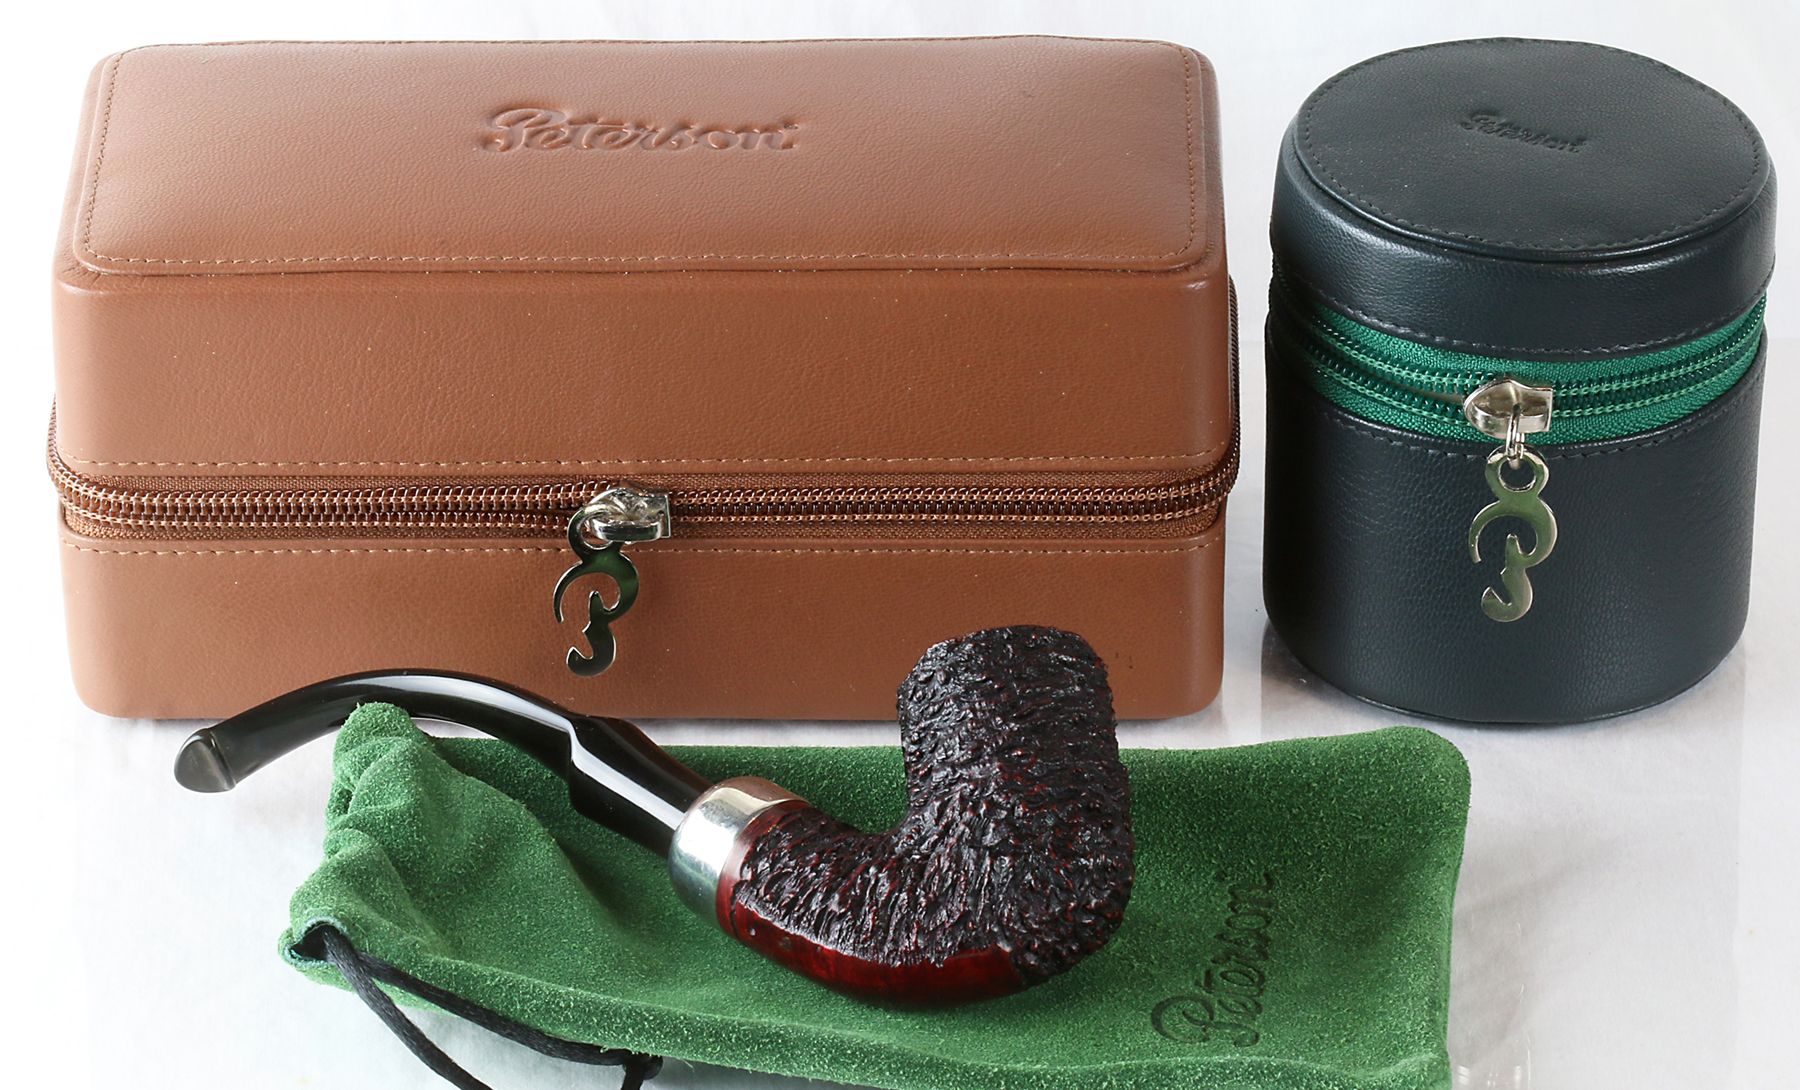 219. Ted Swearingen & the New Peterson Leather Hard Shell Case & Tobacco Jar